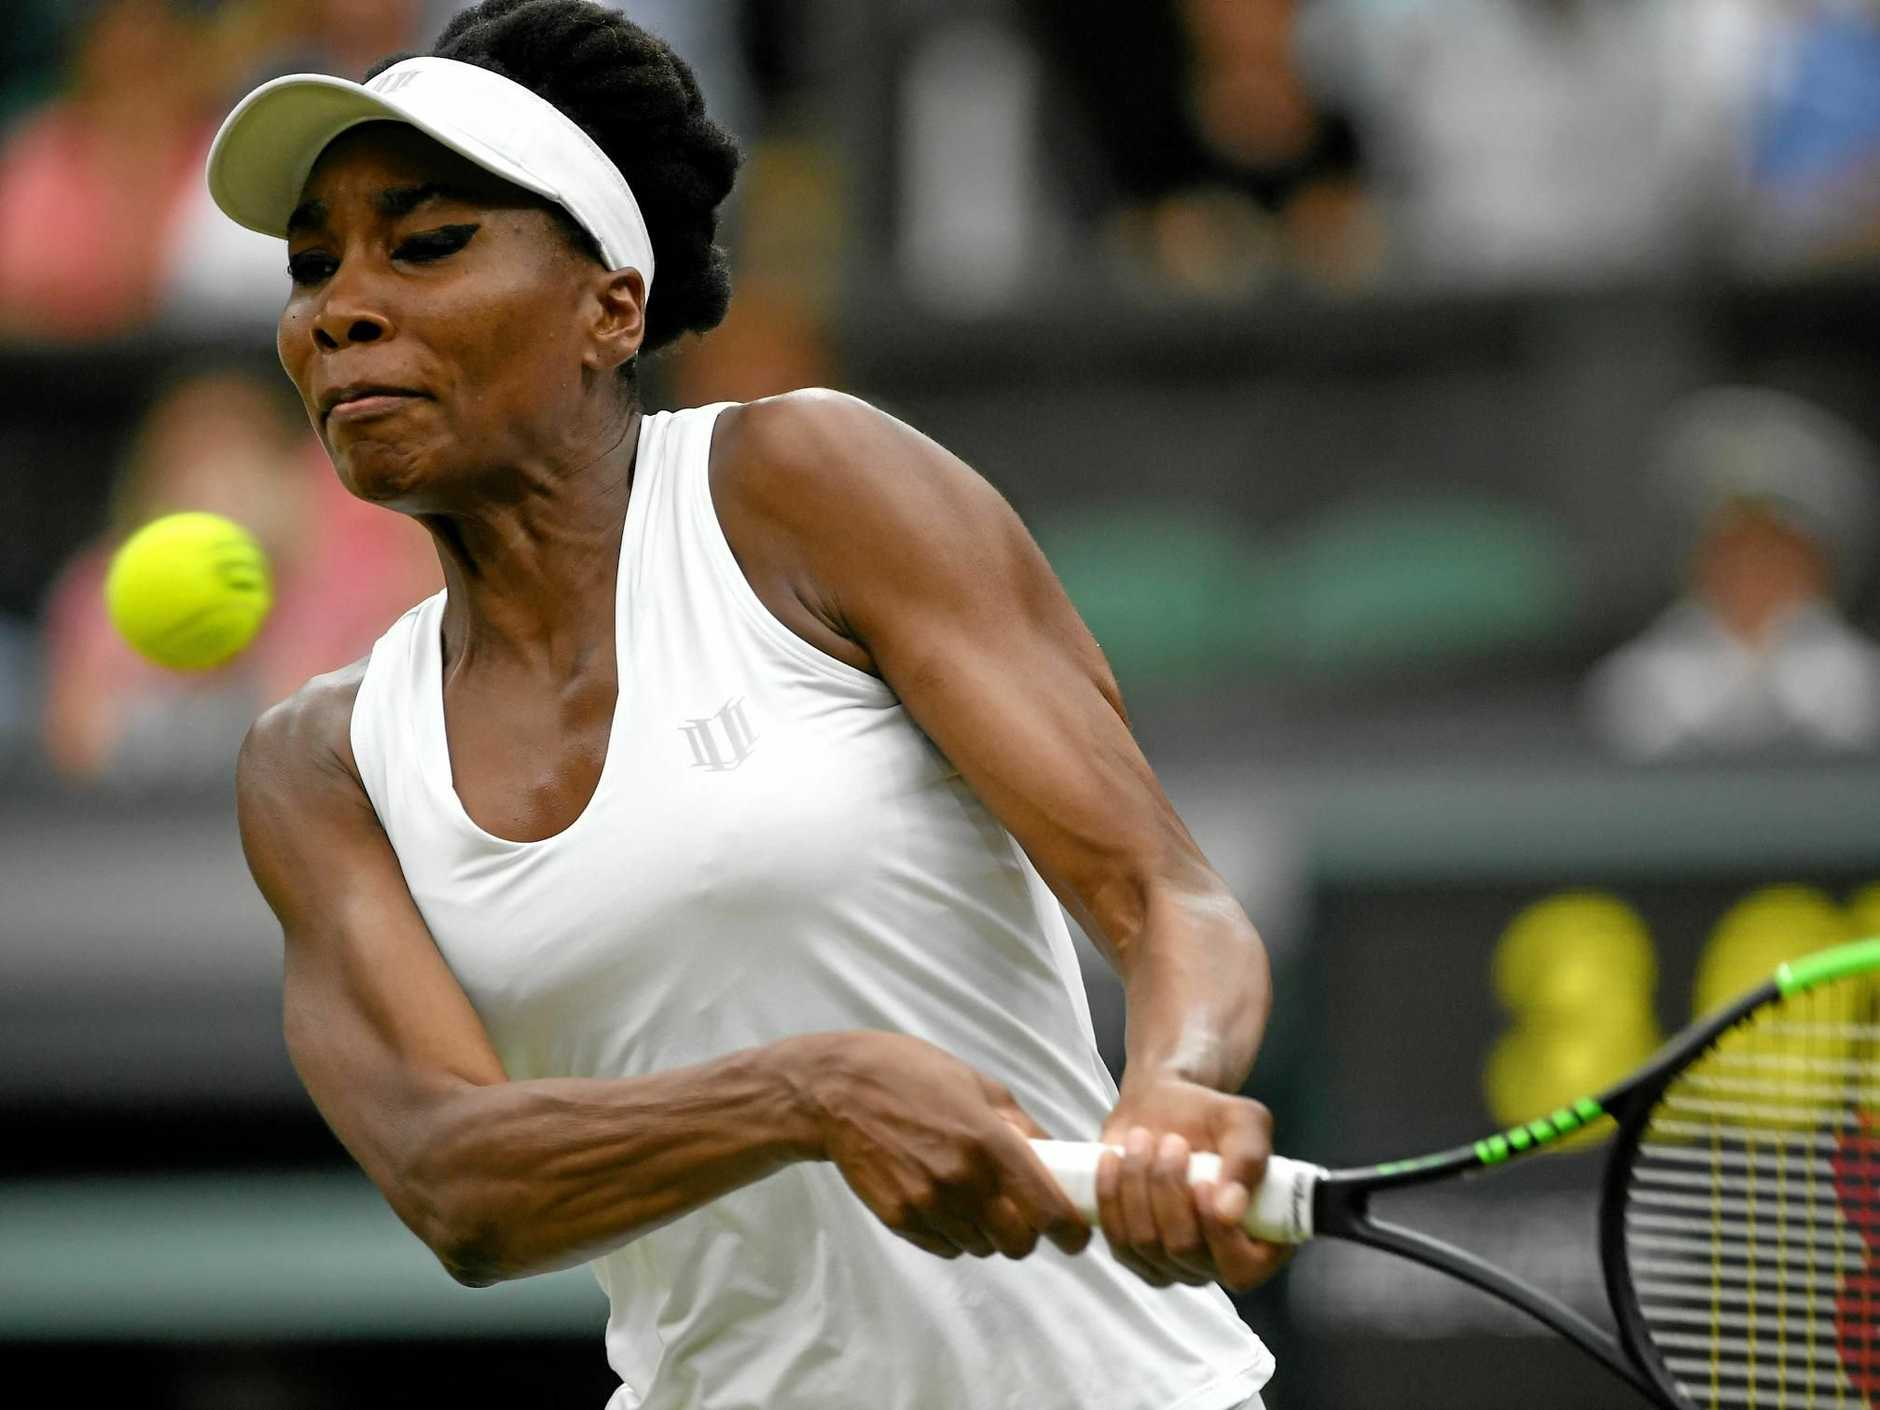 Venus Williams muscles up in her quarter-final clash againstJelena Ostapenko.